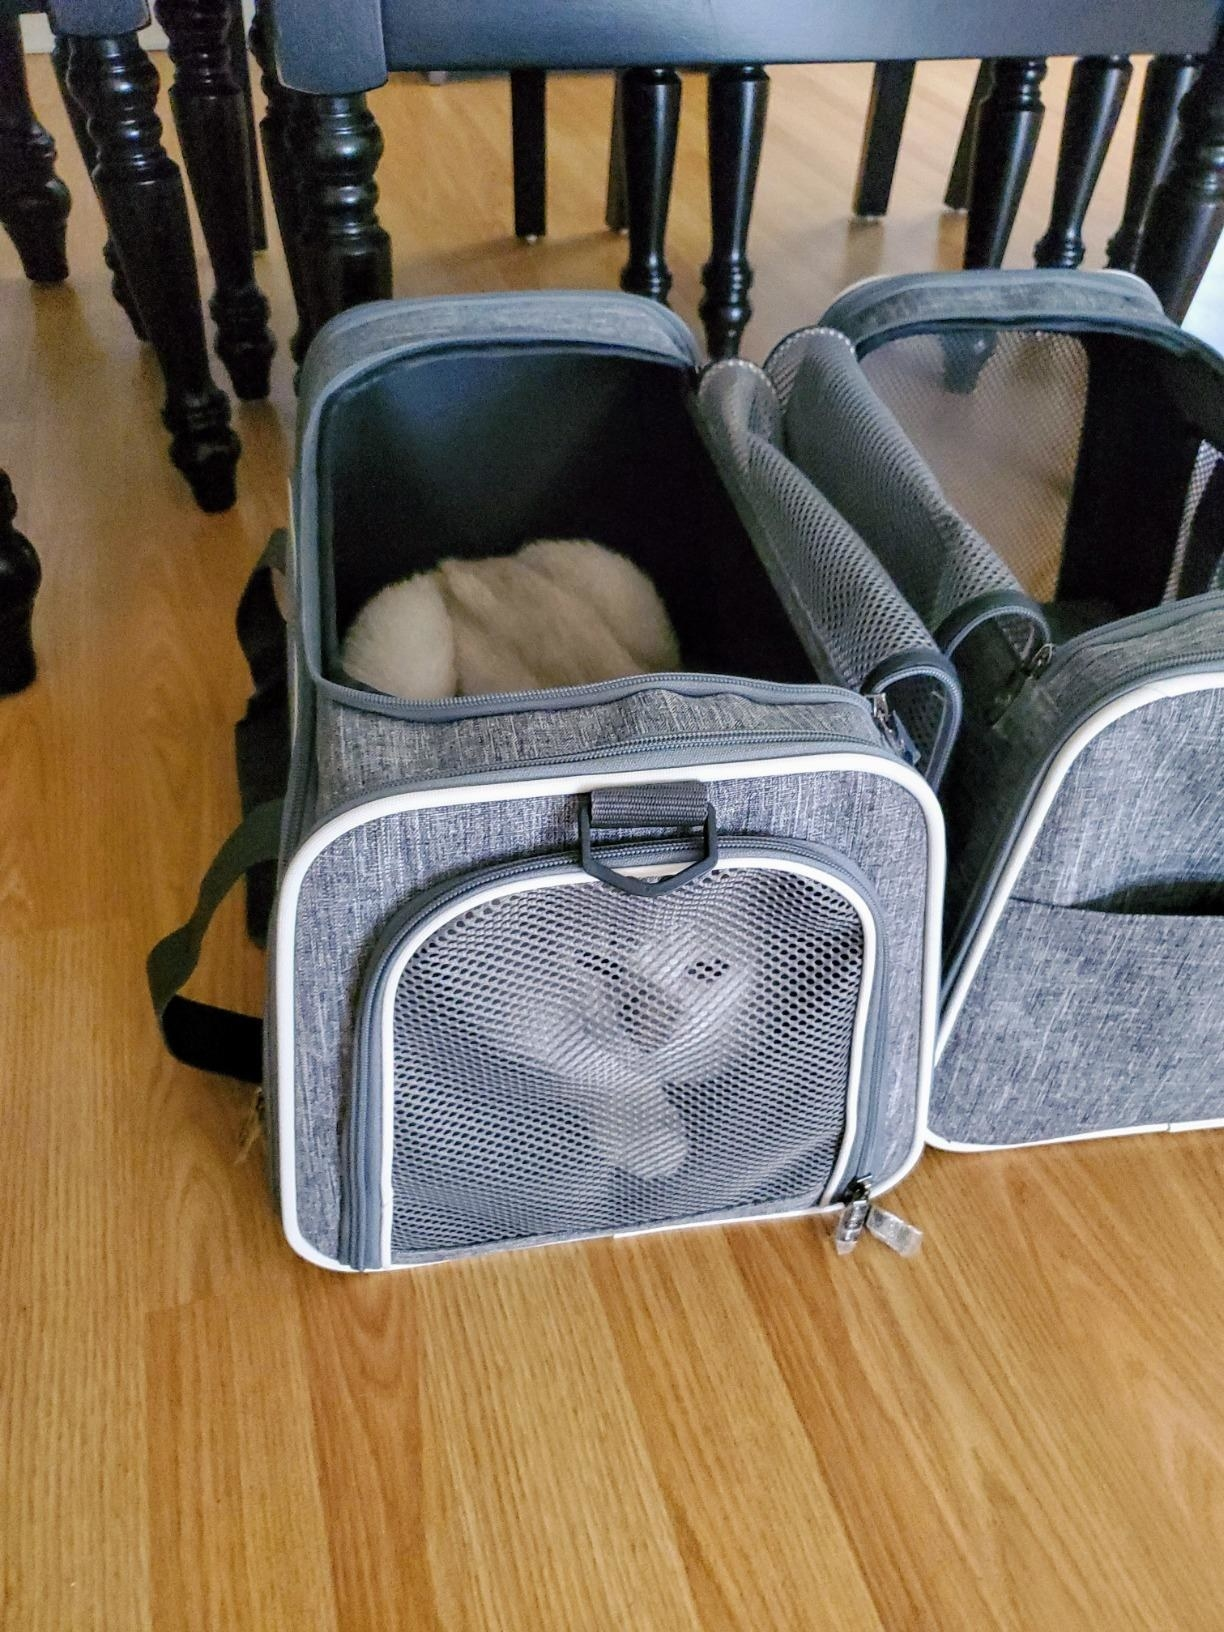 The carrier, which is rectangular, with mesh on the front, back, and side so the pet can see out